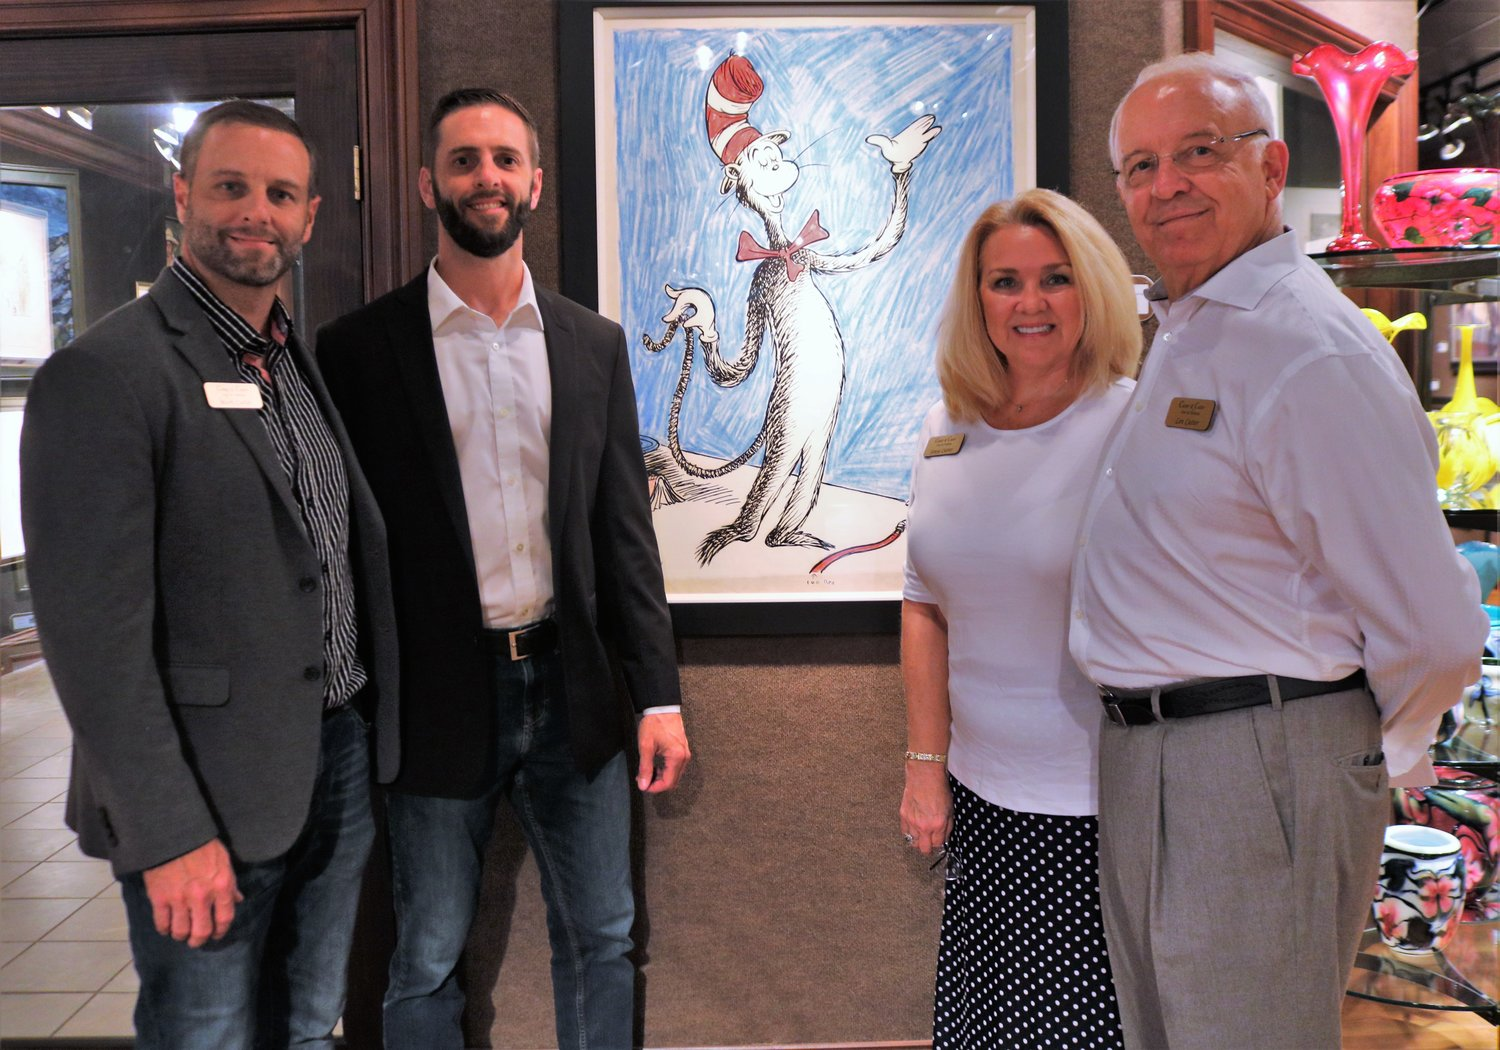 The Cutter family (Left to right), Mark, Matthew, Sonya and Len launched the opening of their gallery's Salvador Dali and Dr. Seuss exhibit on July 5 in the St. Augustine location.